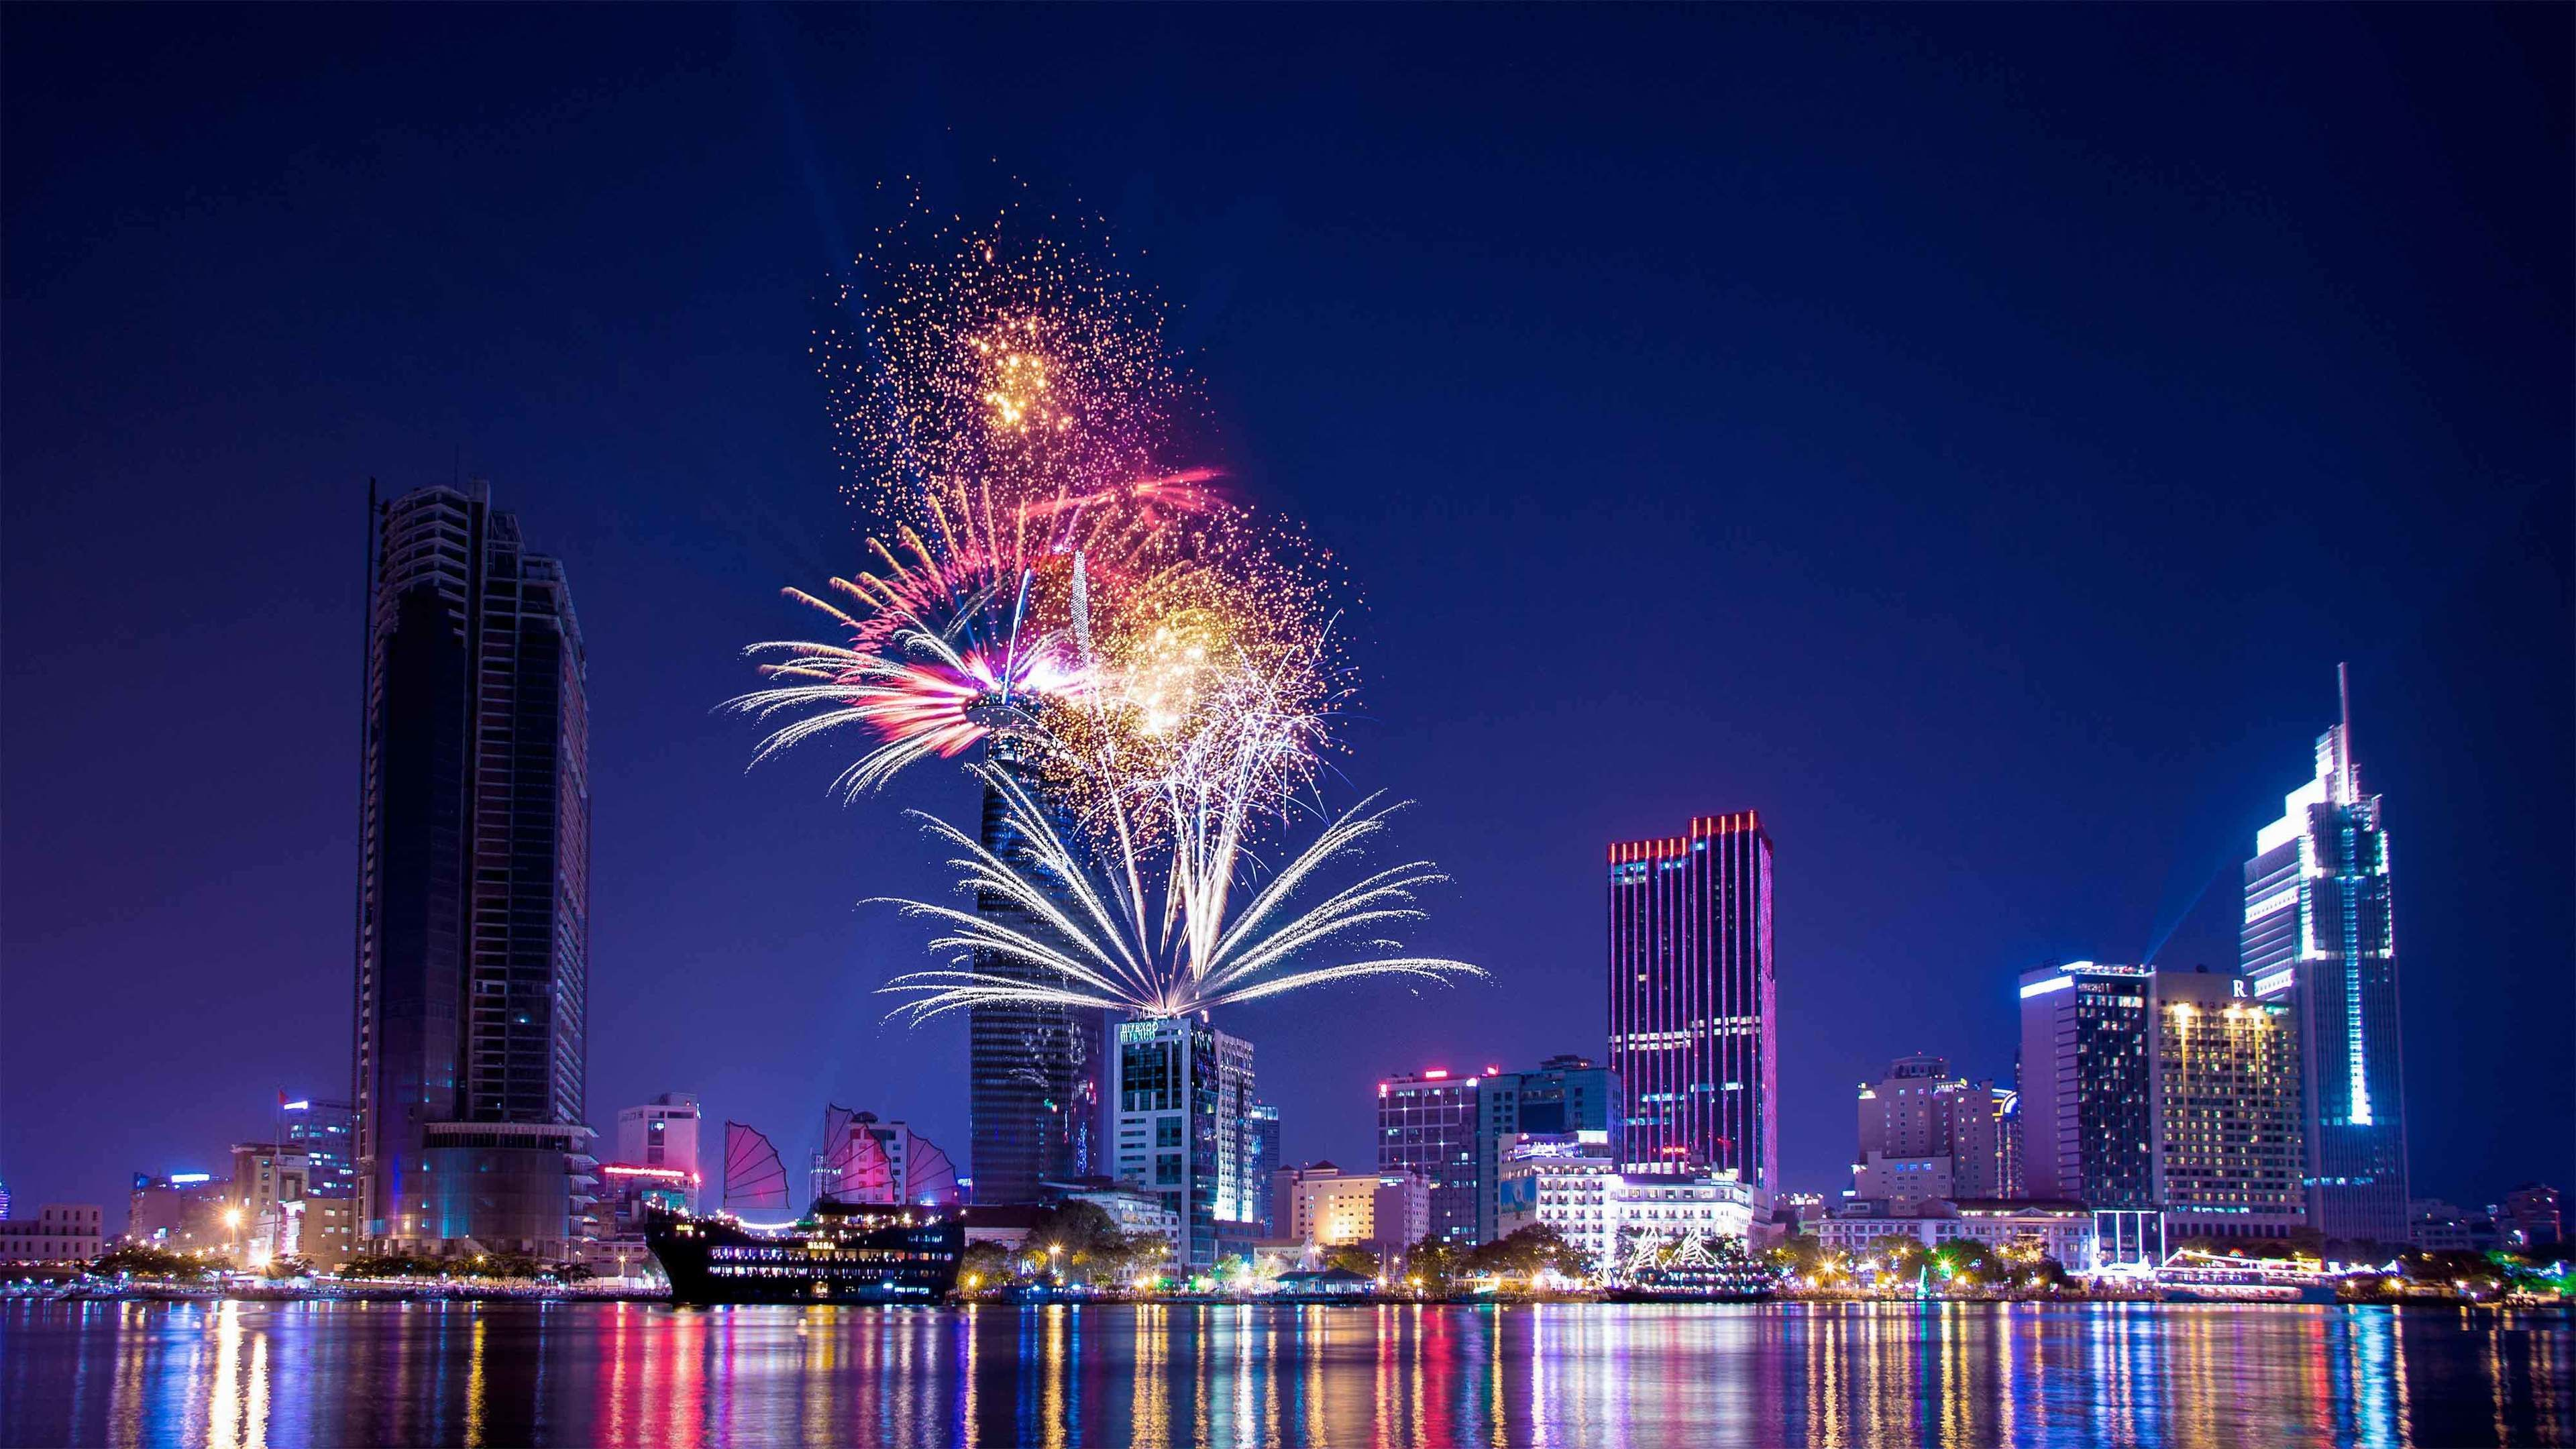 View of stunning fireworks from the Saigon Skydeck-Bitexco Financial Tower in Ho Chi Minh City